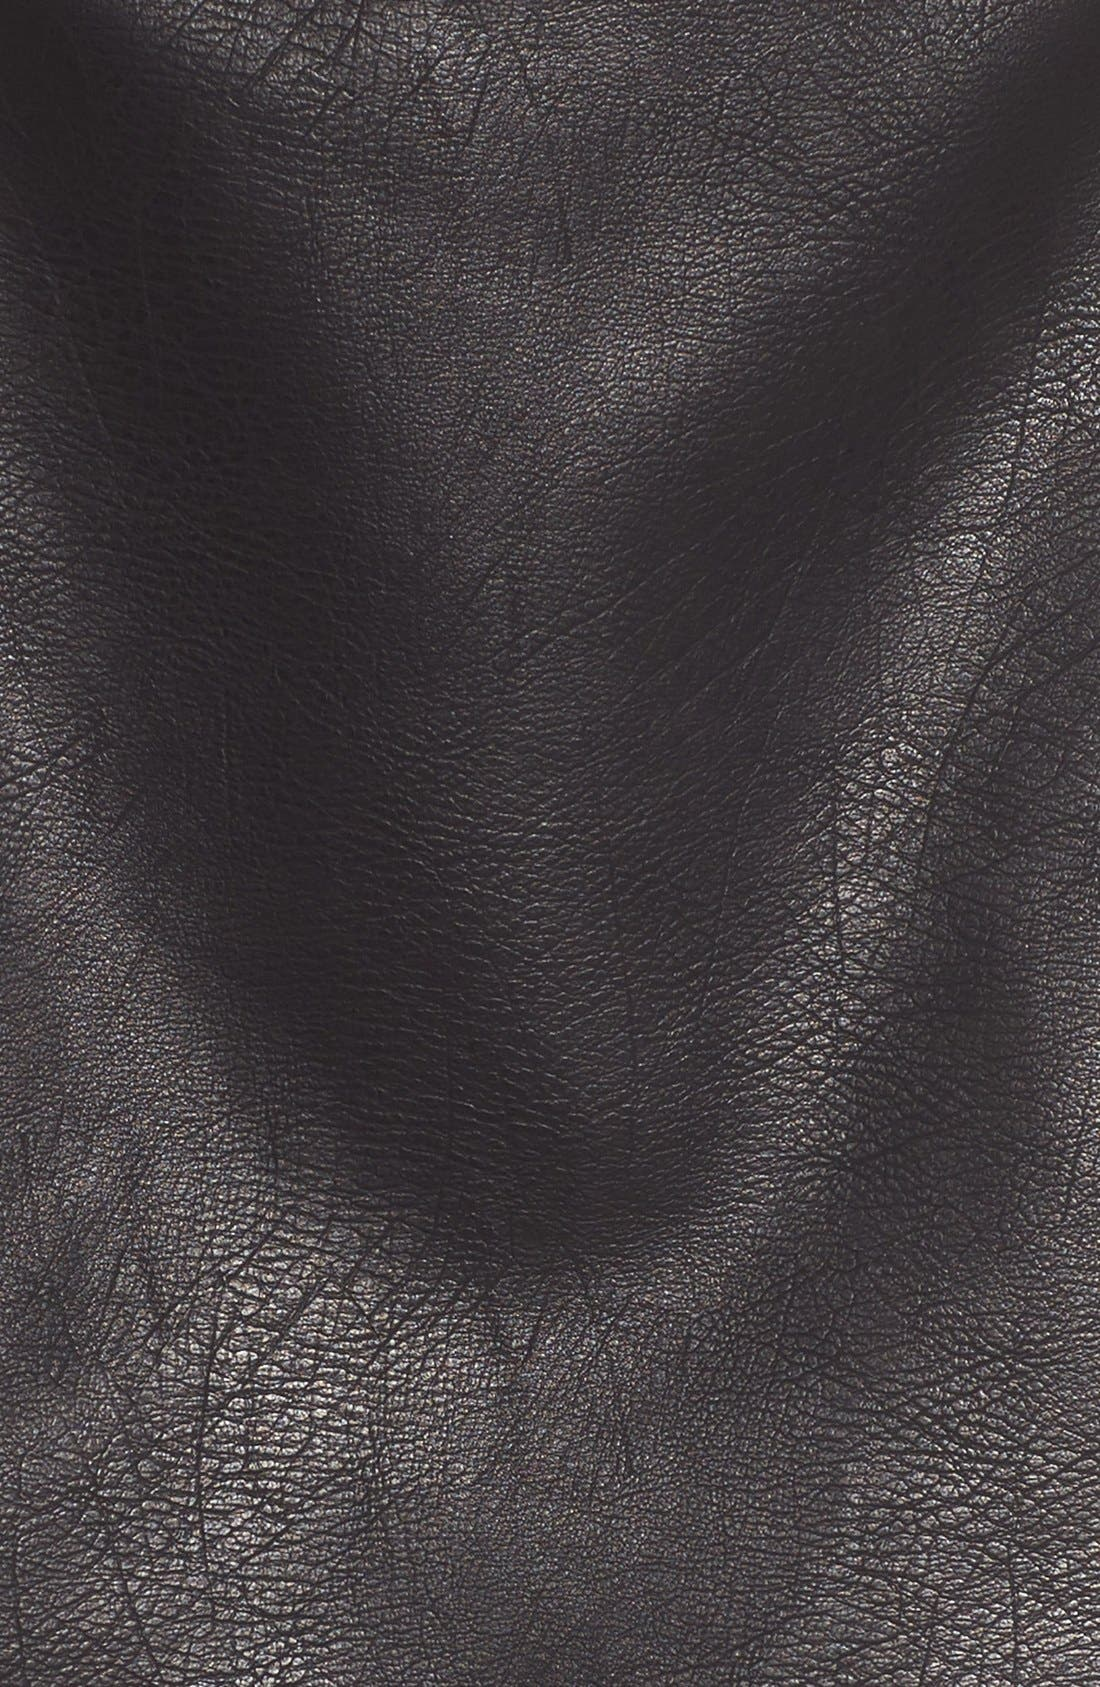 Alternate Image 5  - Leith Faux Leather Skirt